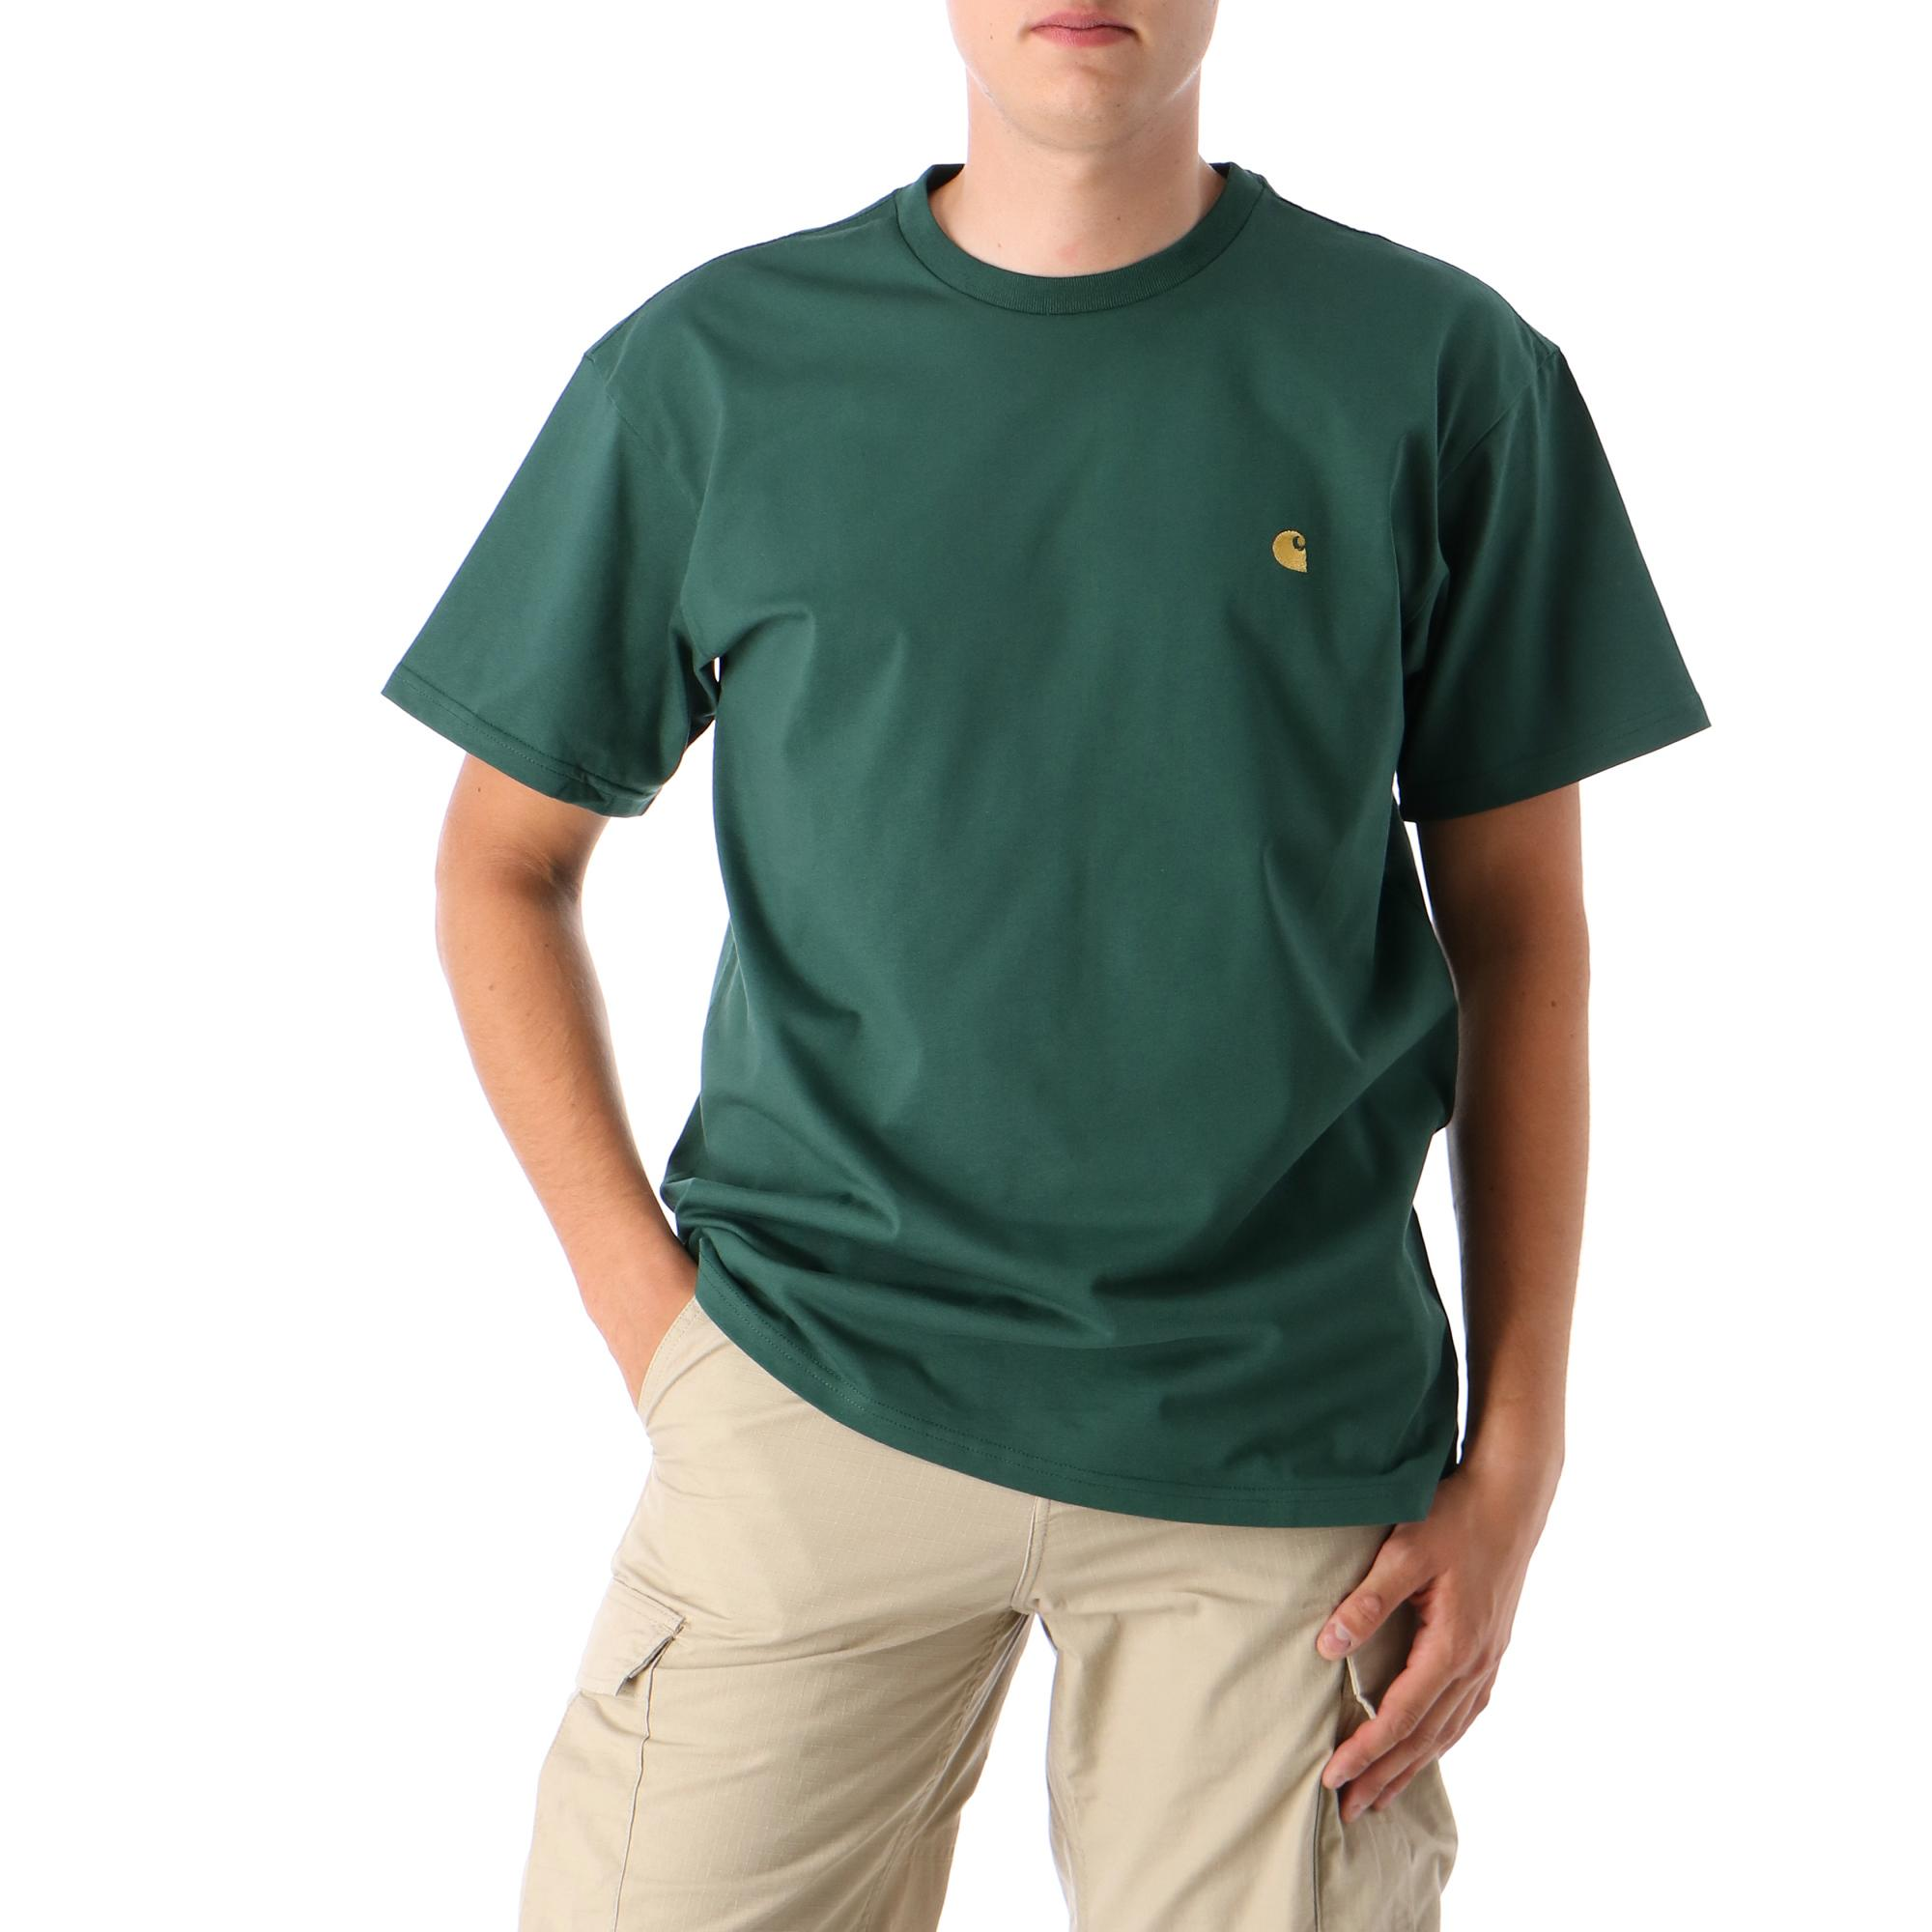 Carhartt S/s Chase T-shirt Treehouse gold